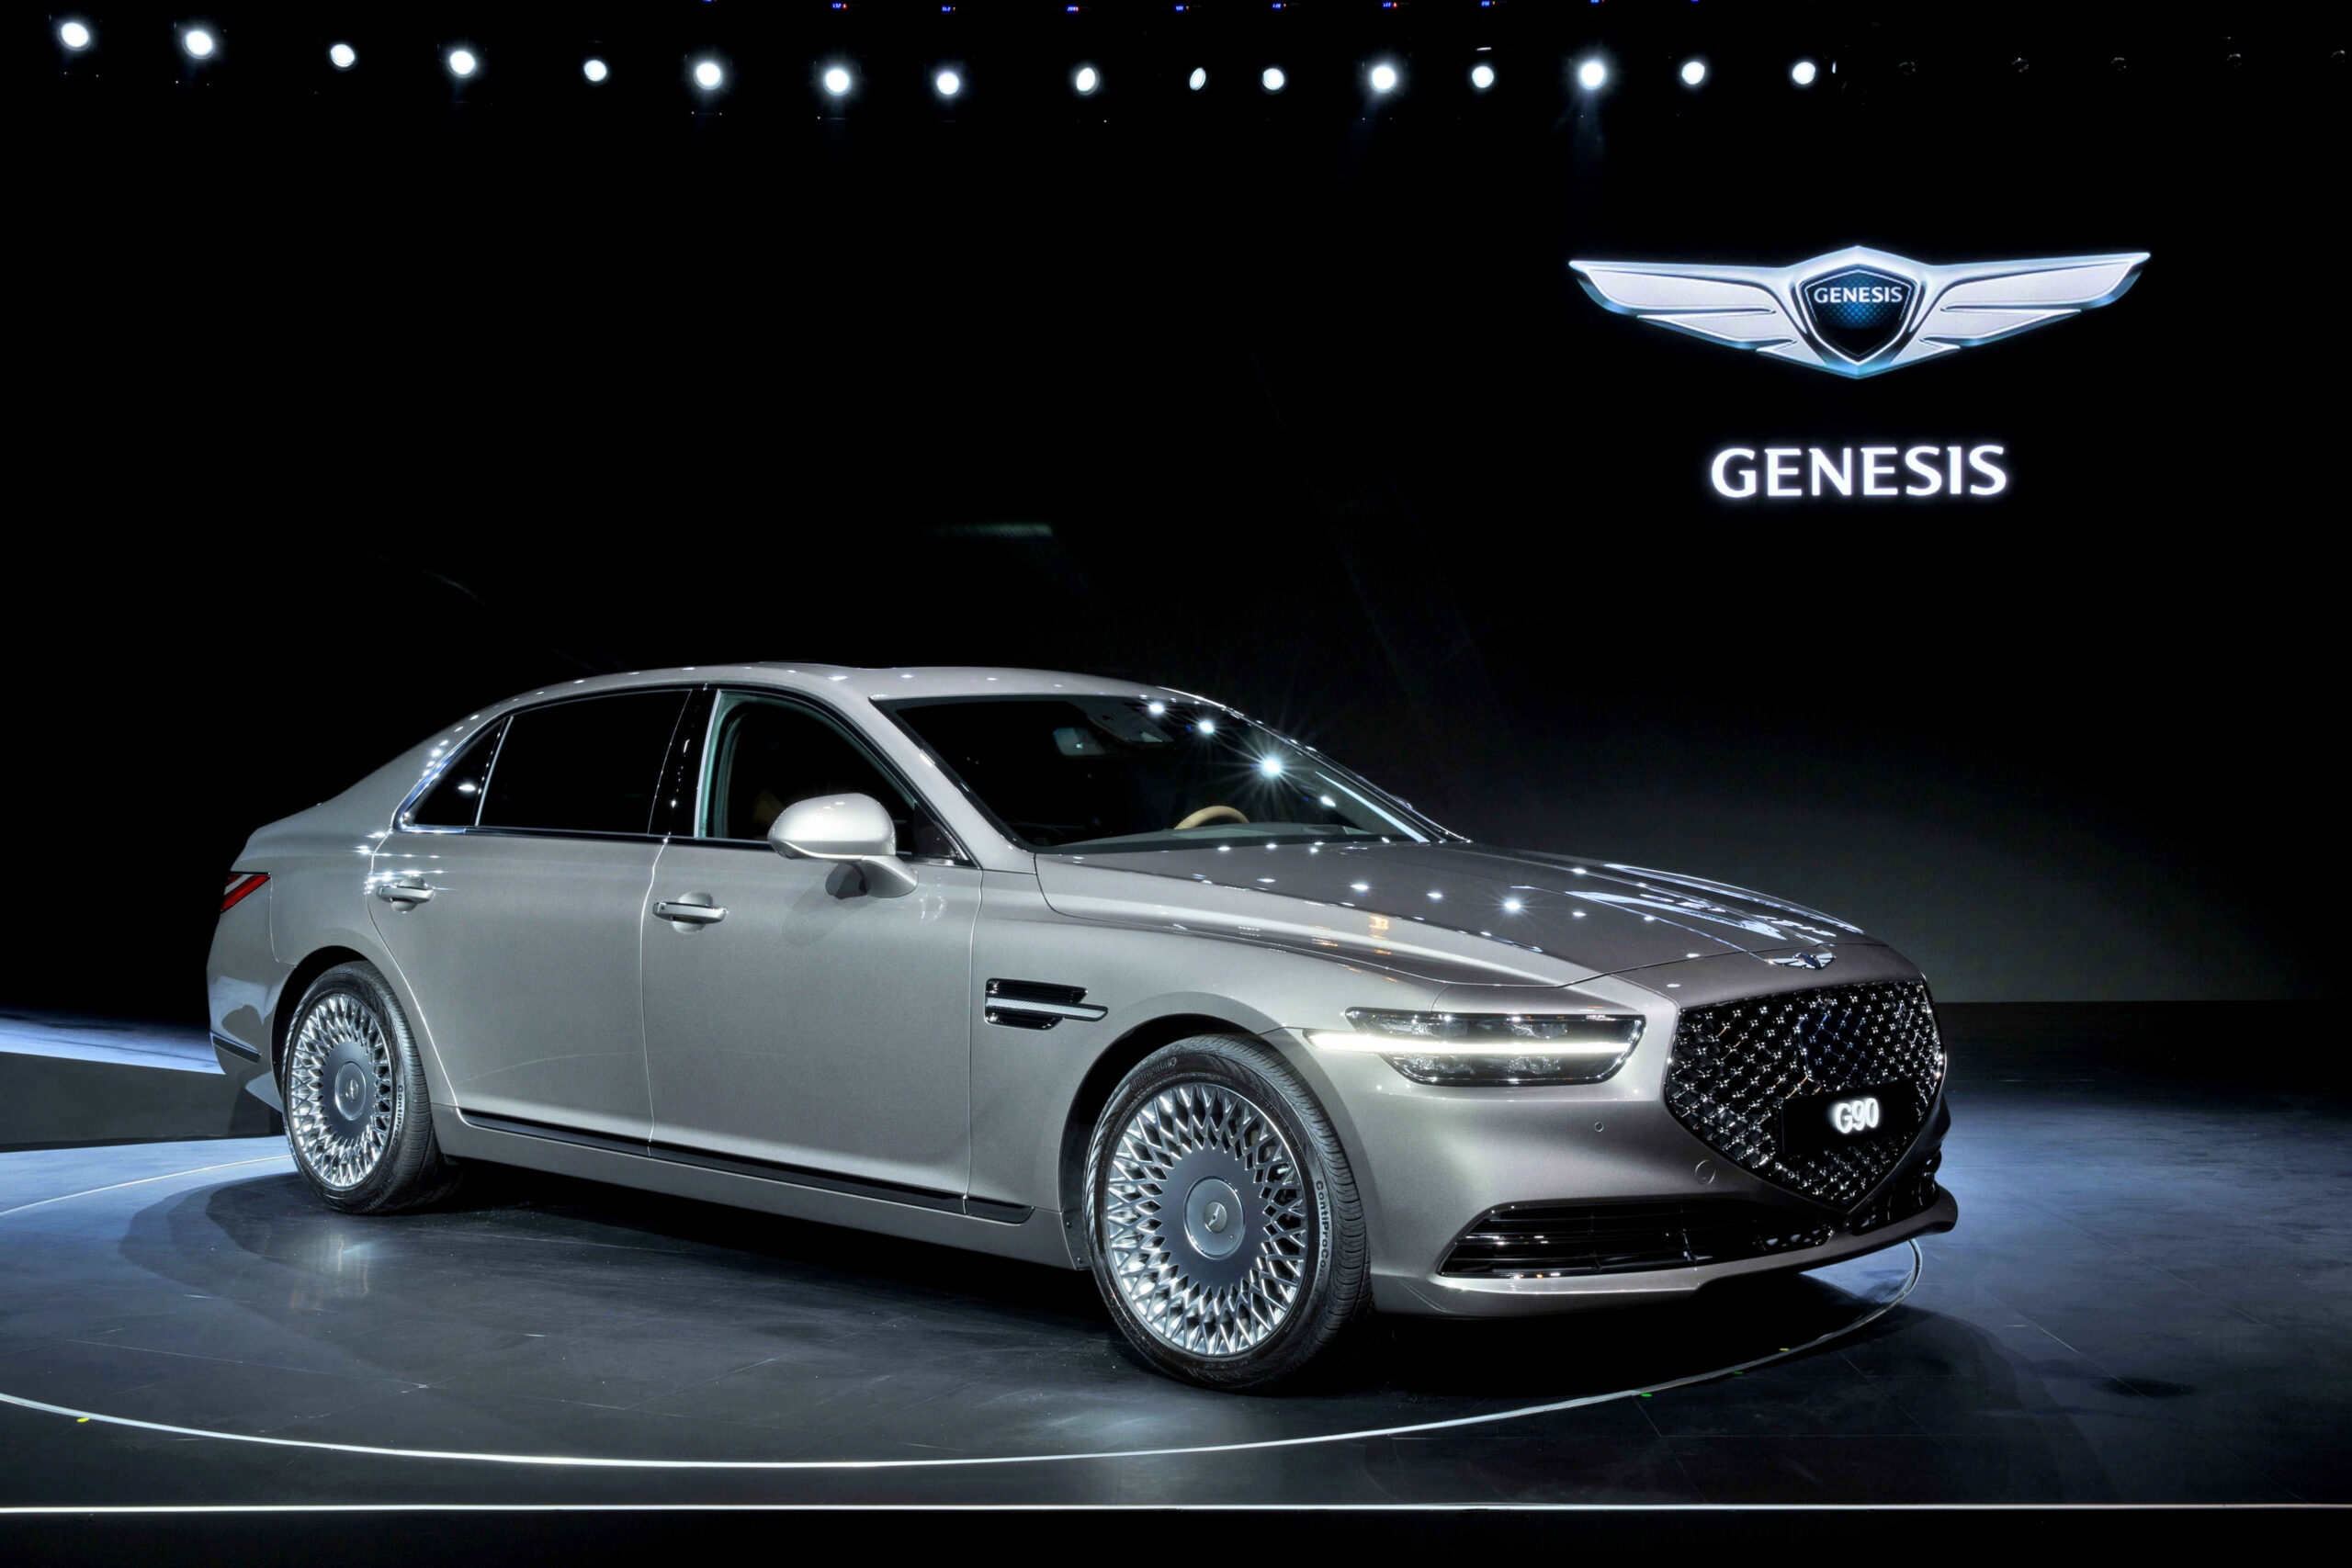 The 10 Genesis G10 Flagship Has New Style Inside and Out - kia genesis 2020